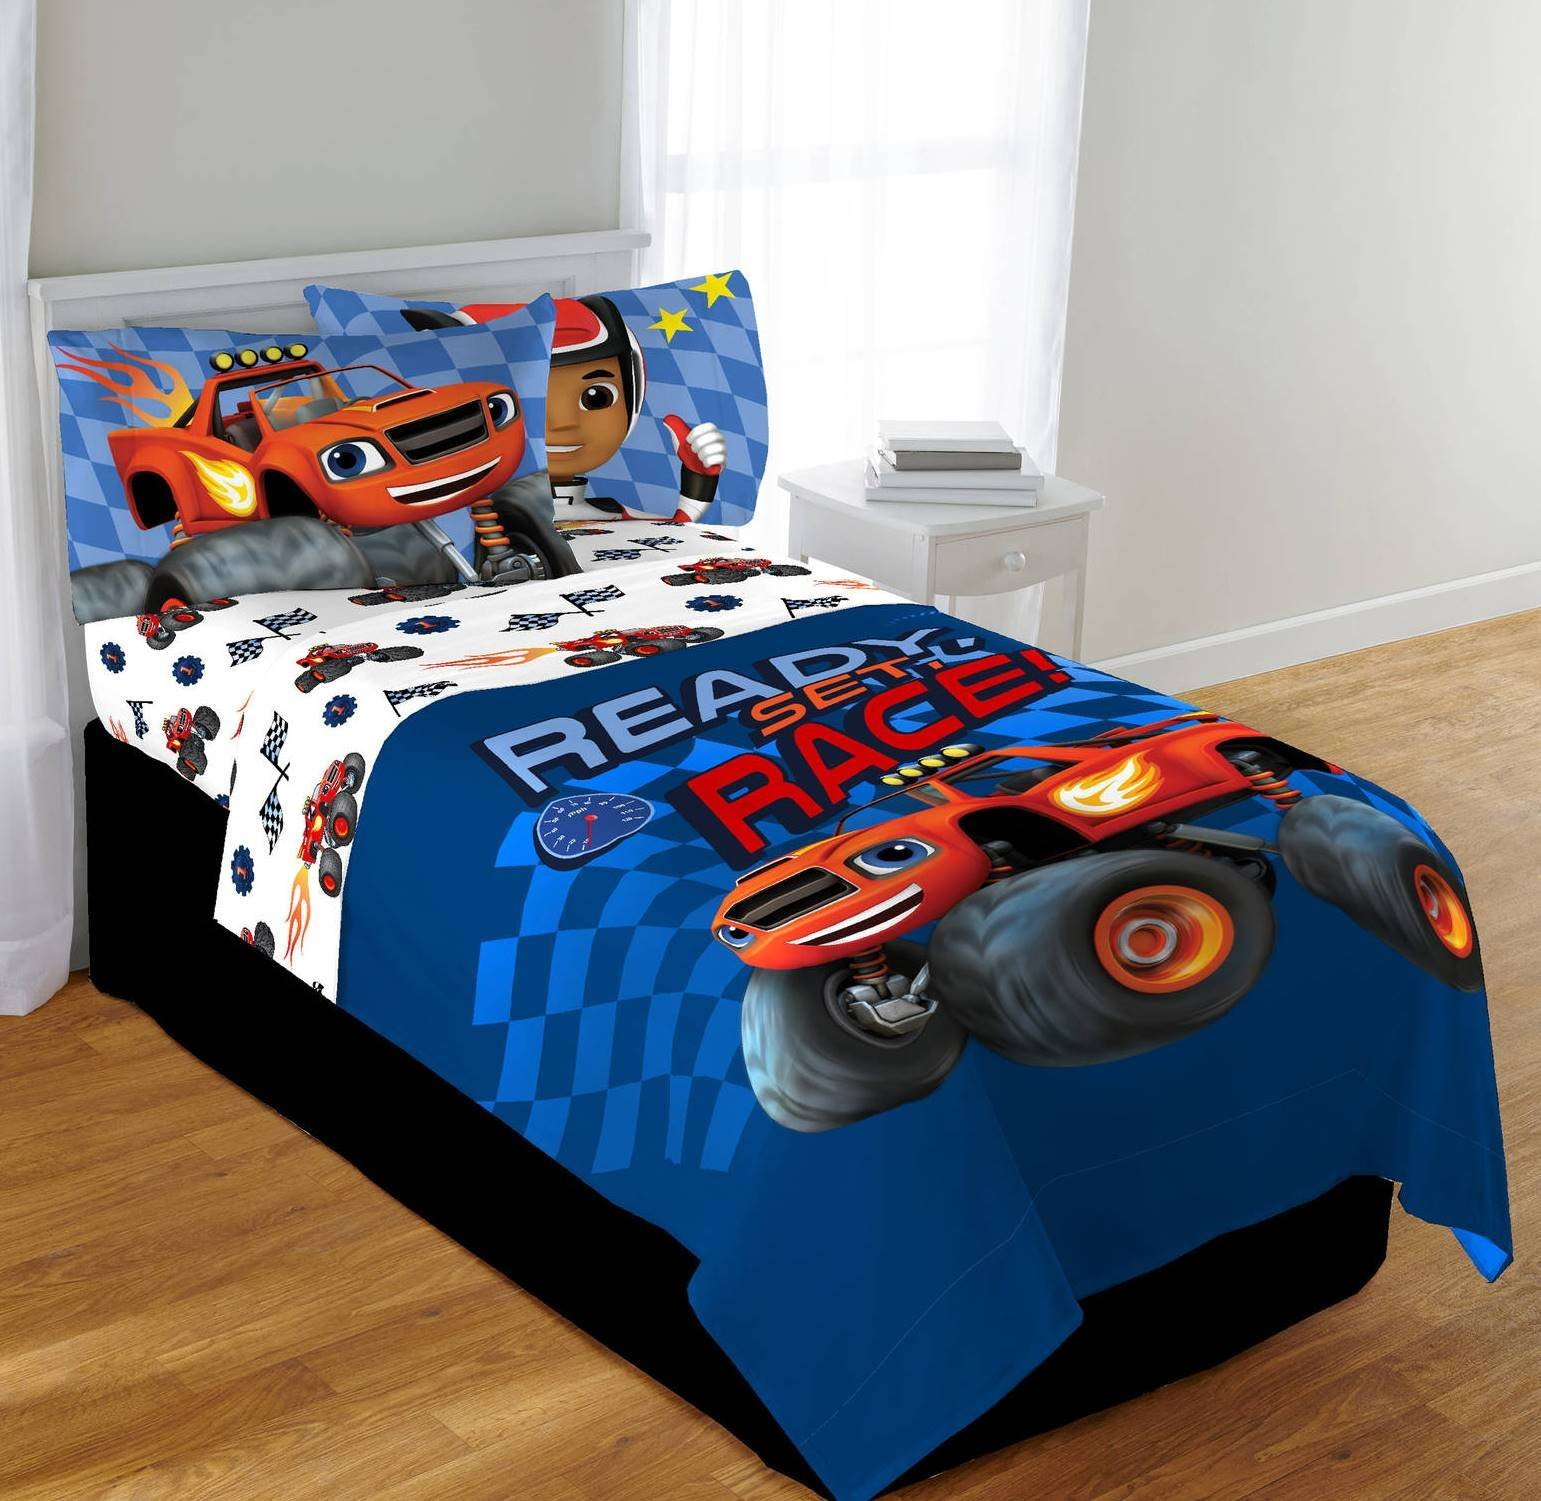 Nickelodeon Blaze and the Monster Machines High Octane Twin/Full Comforter and Full Sheet Set